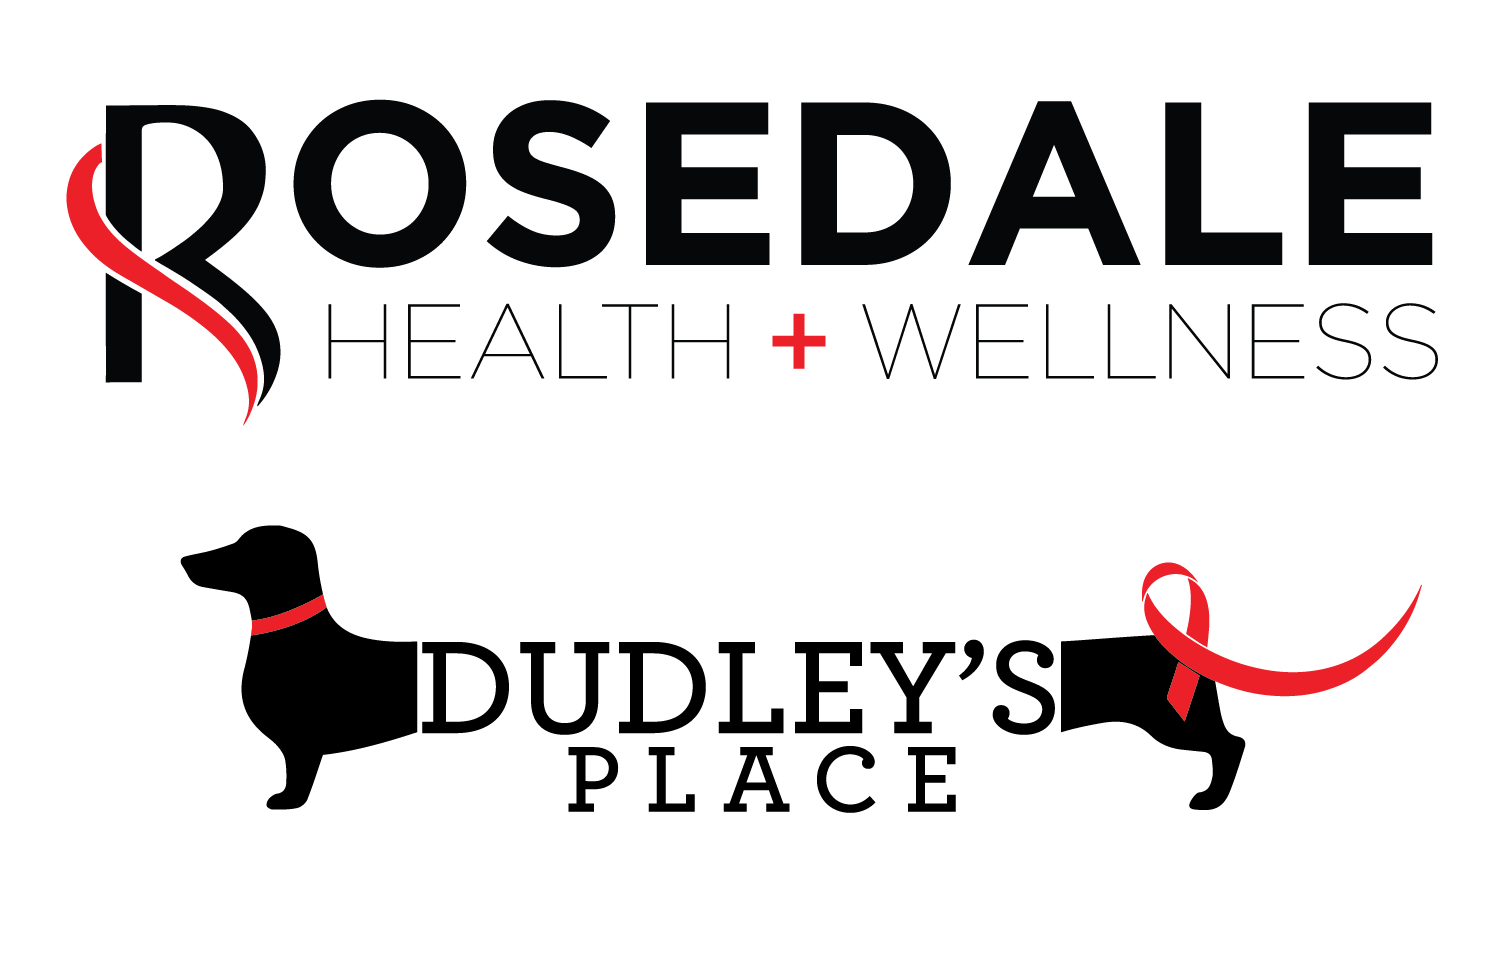 Rosedale - Dudley's Place